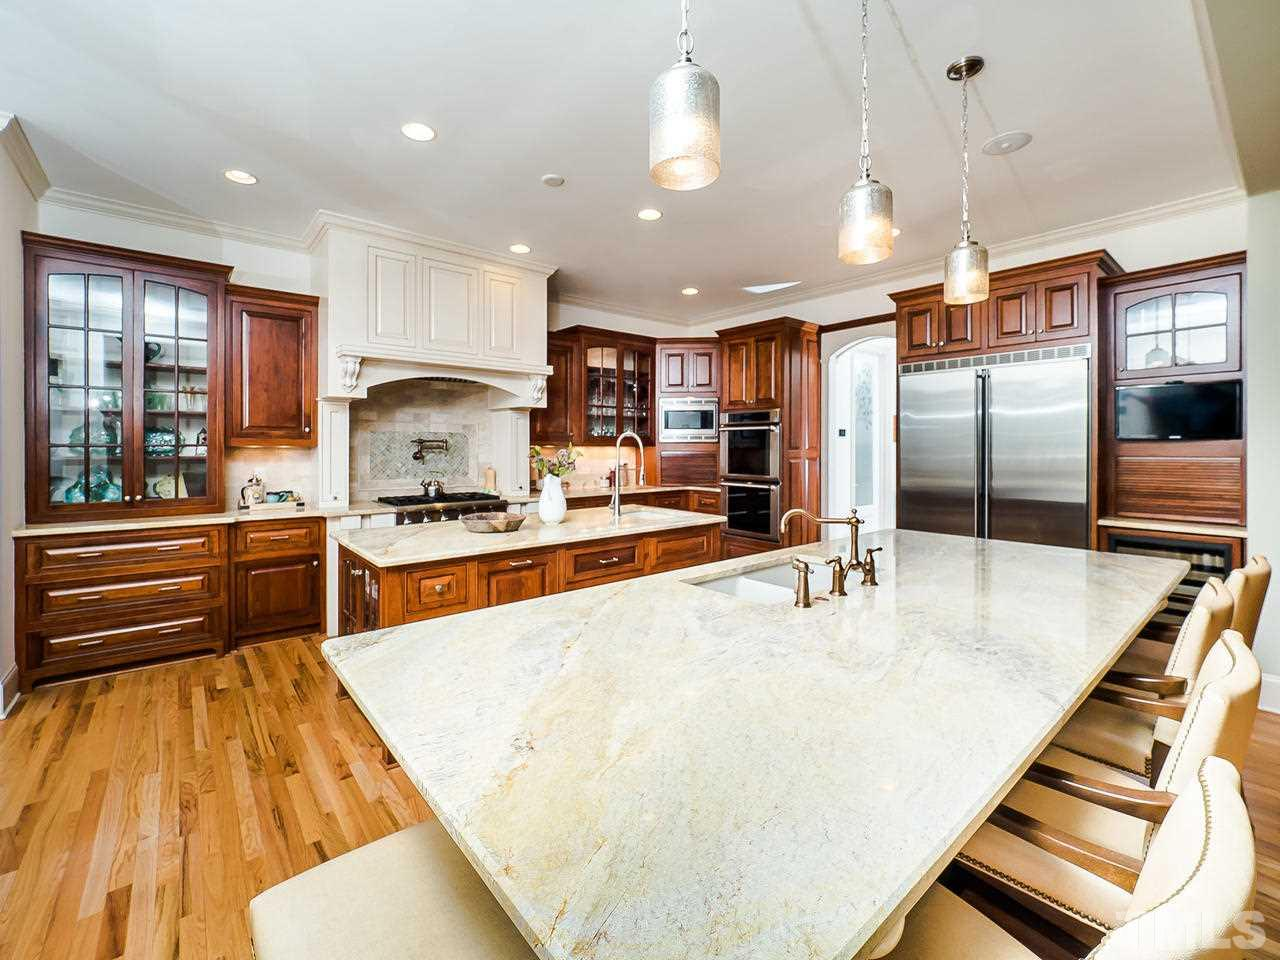 Double ovens, gas cooktop, built in Liebherr refrigerator & wine fridge make this a dream Kitchen.